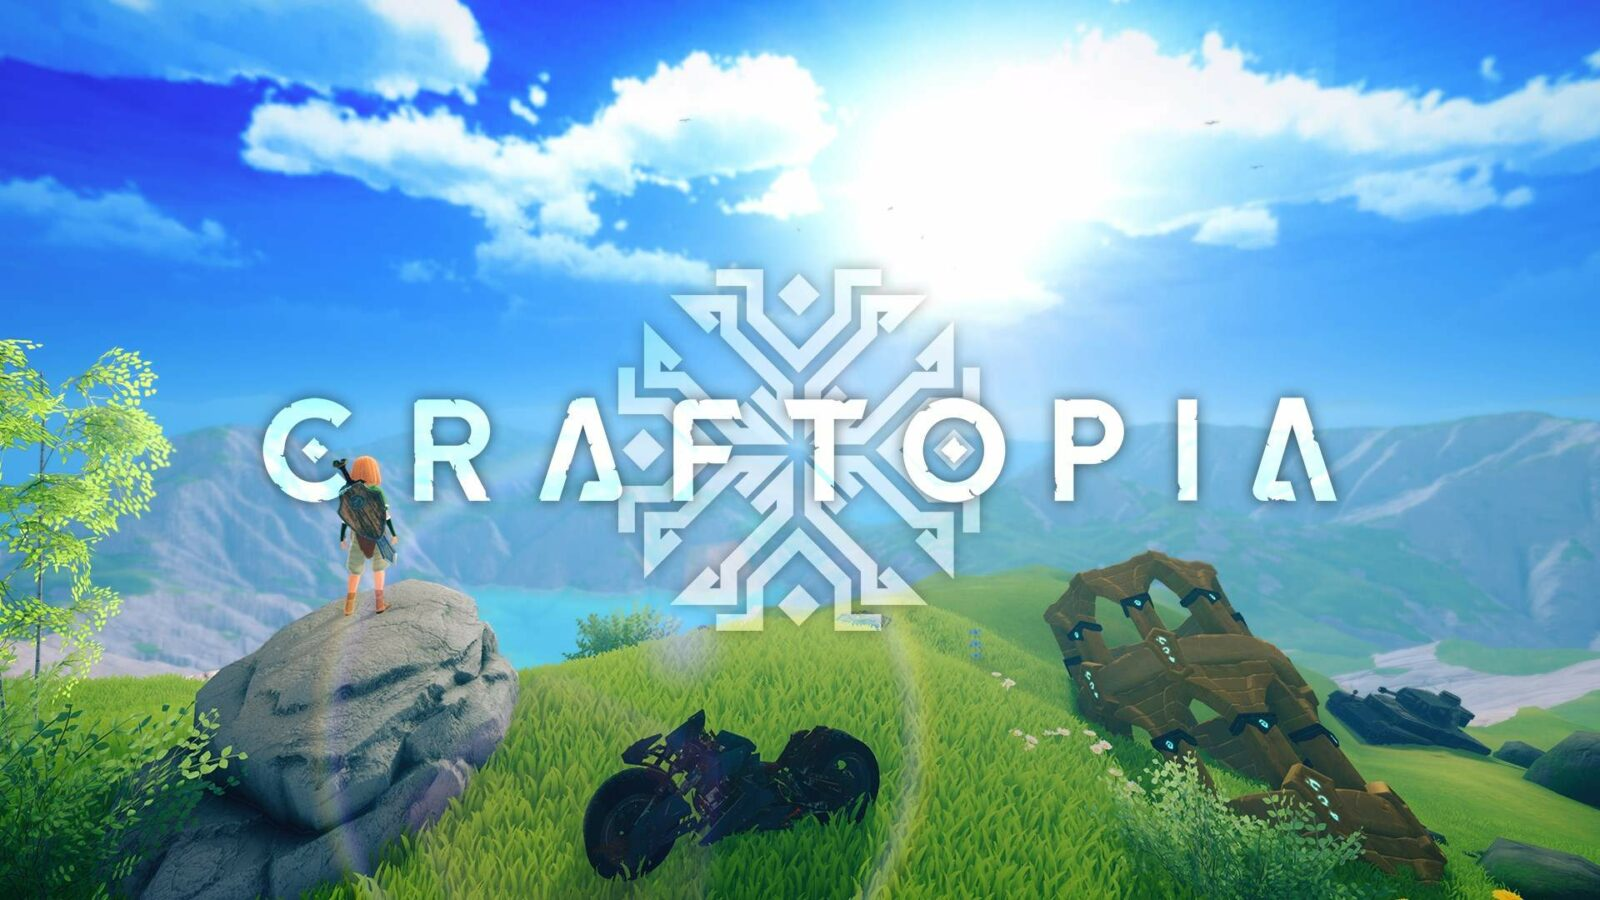 Craftopia Is Now Available In Game Preview For Windows 10, Xbox One, And Xbox Series X|S 1